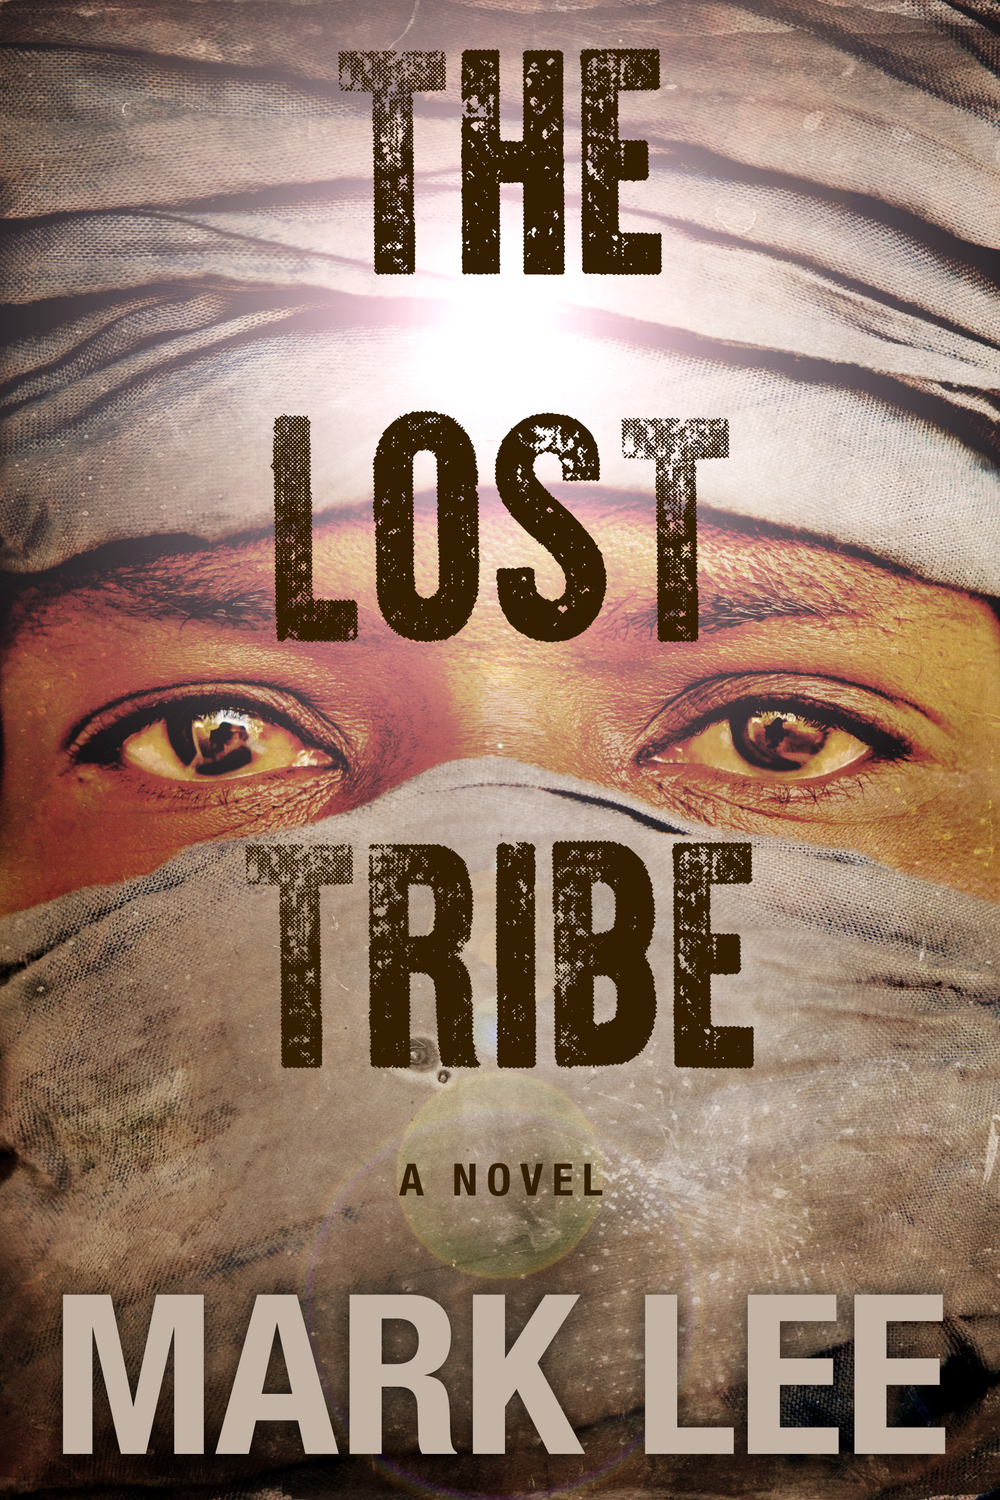 The Lost Tribe_300dpi.jpg